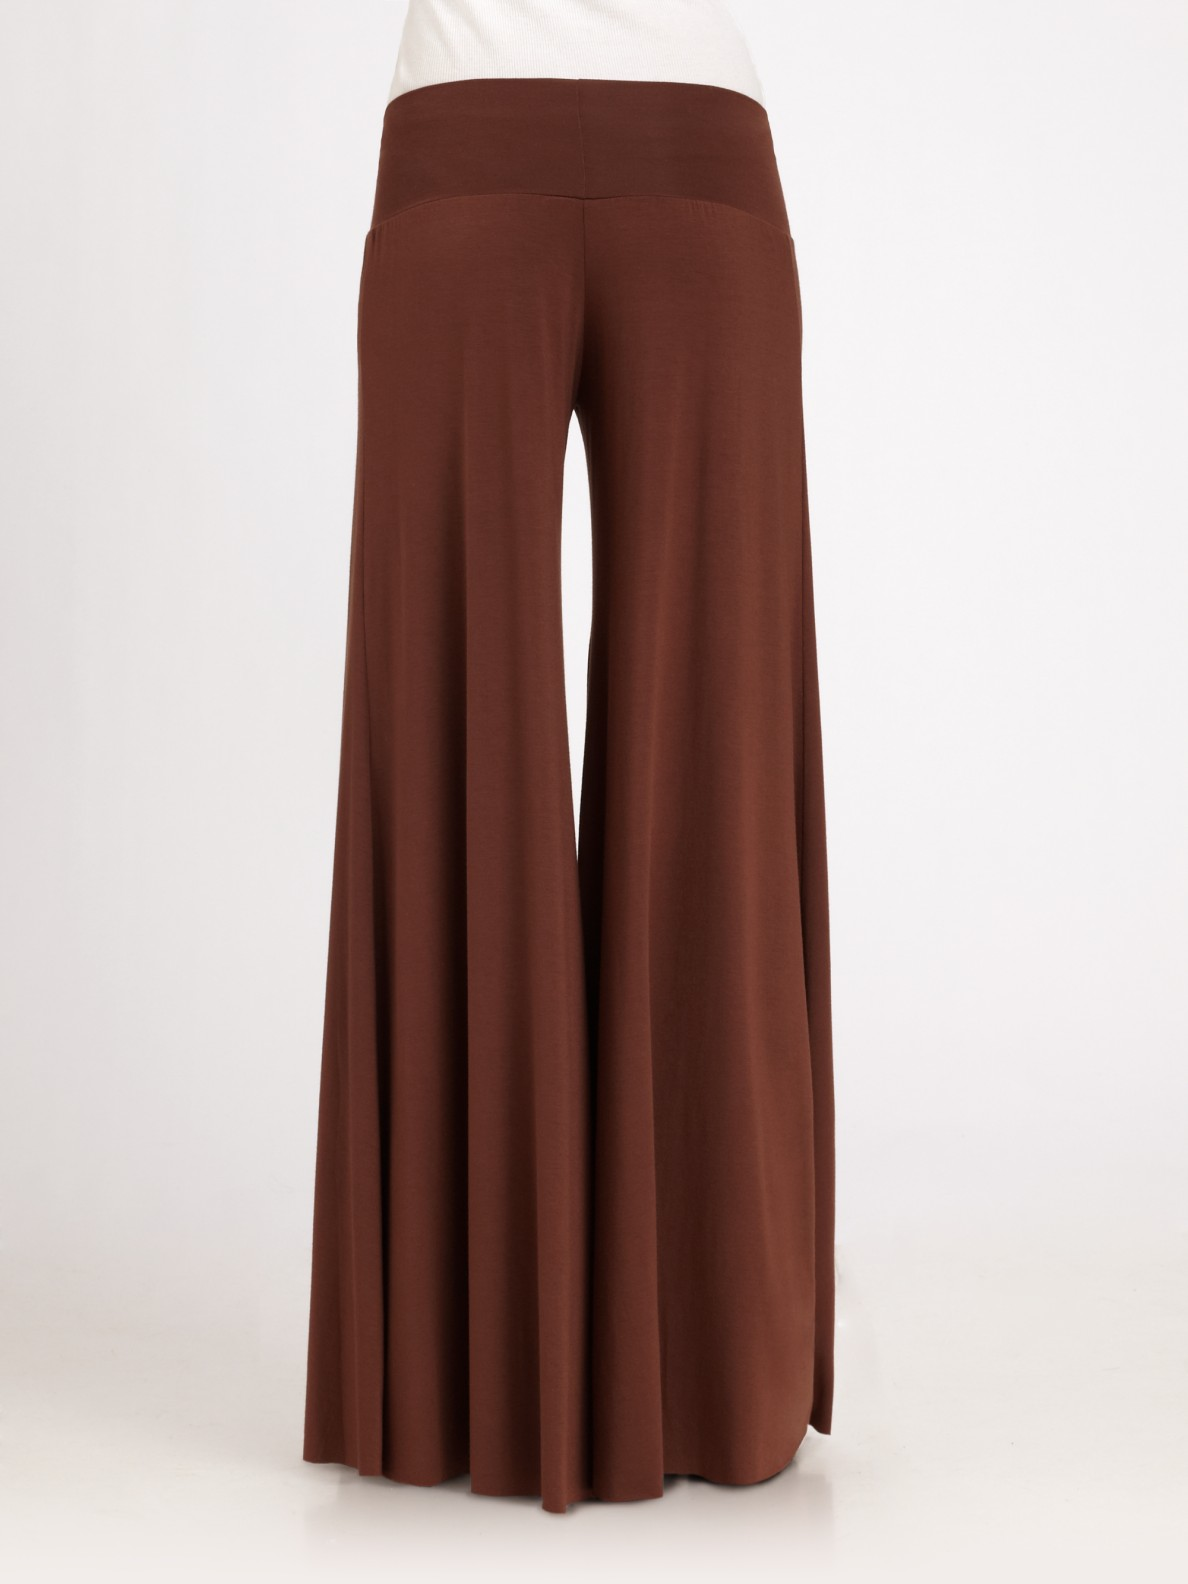 Rachel pally Wide-leg Stretch Pants in Brown | Lyst